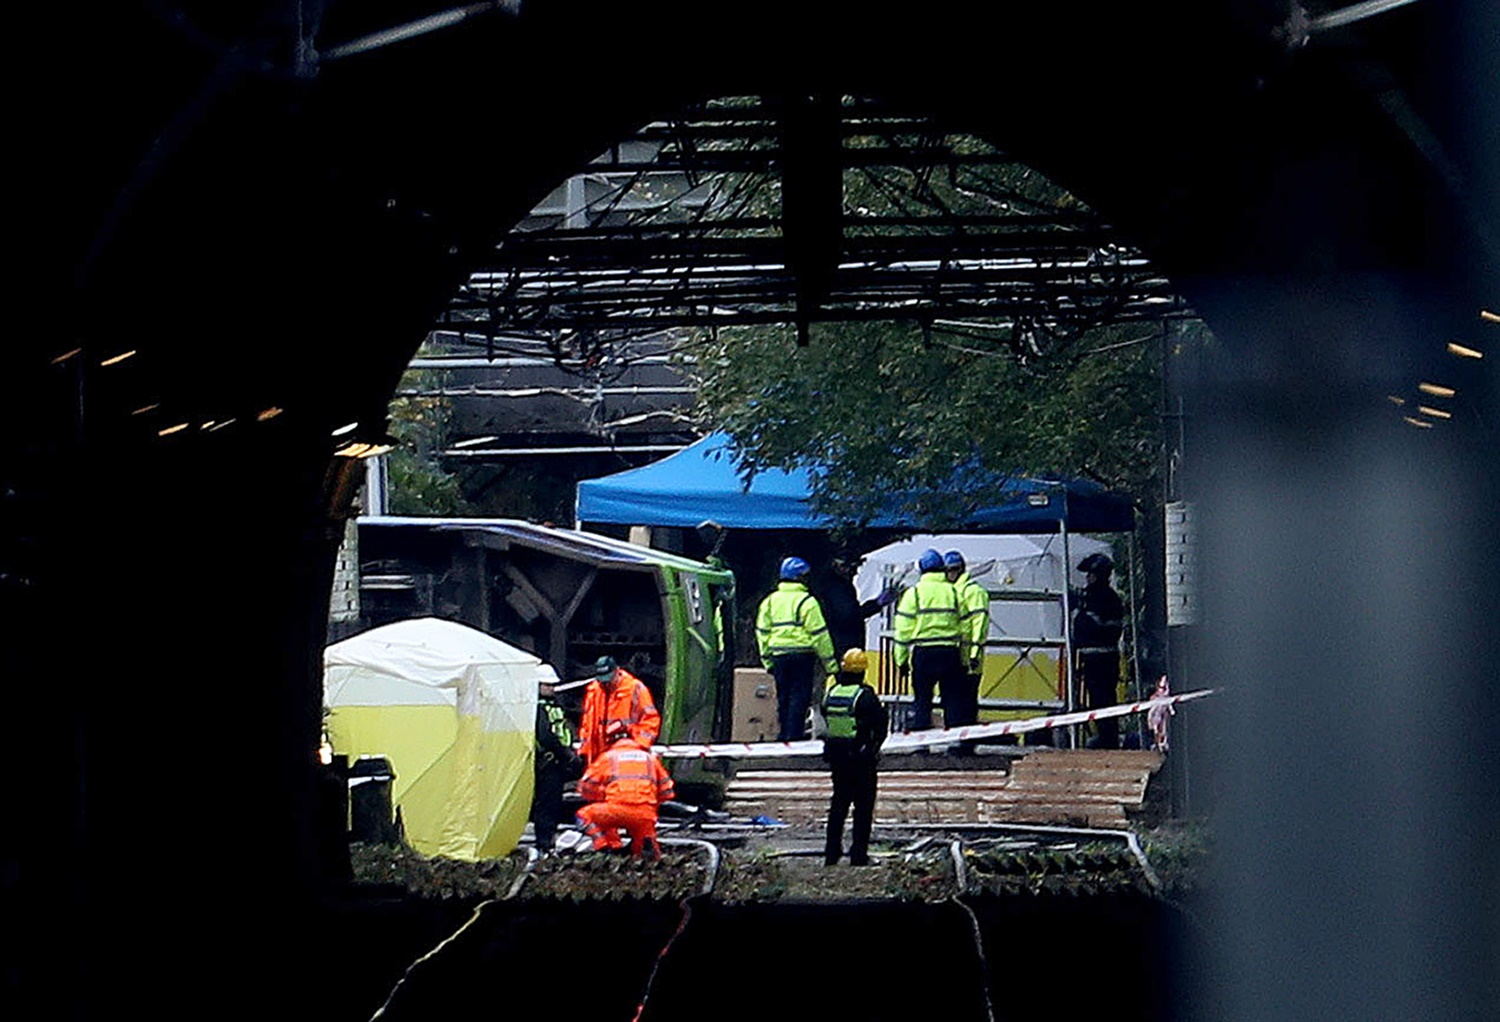 Croydon tram crash driver likely lost awareness due to a 'microsleep'